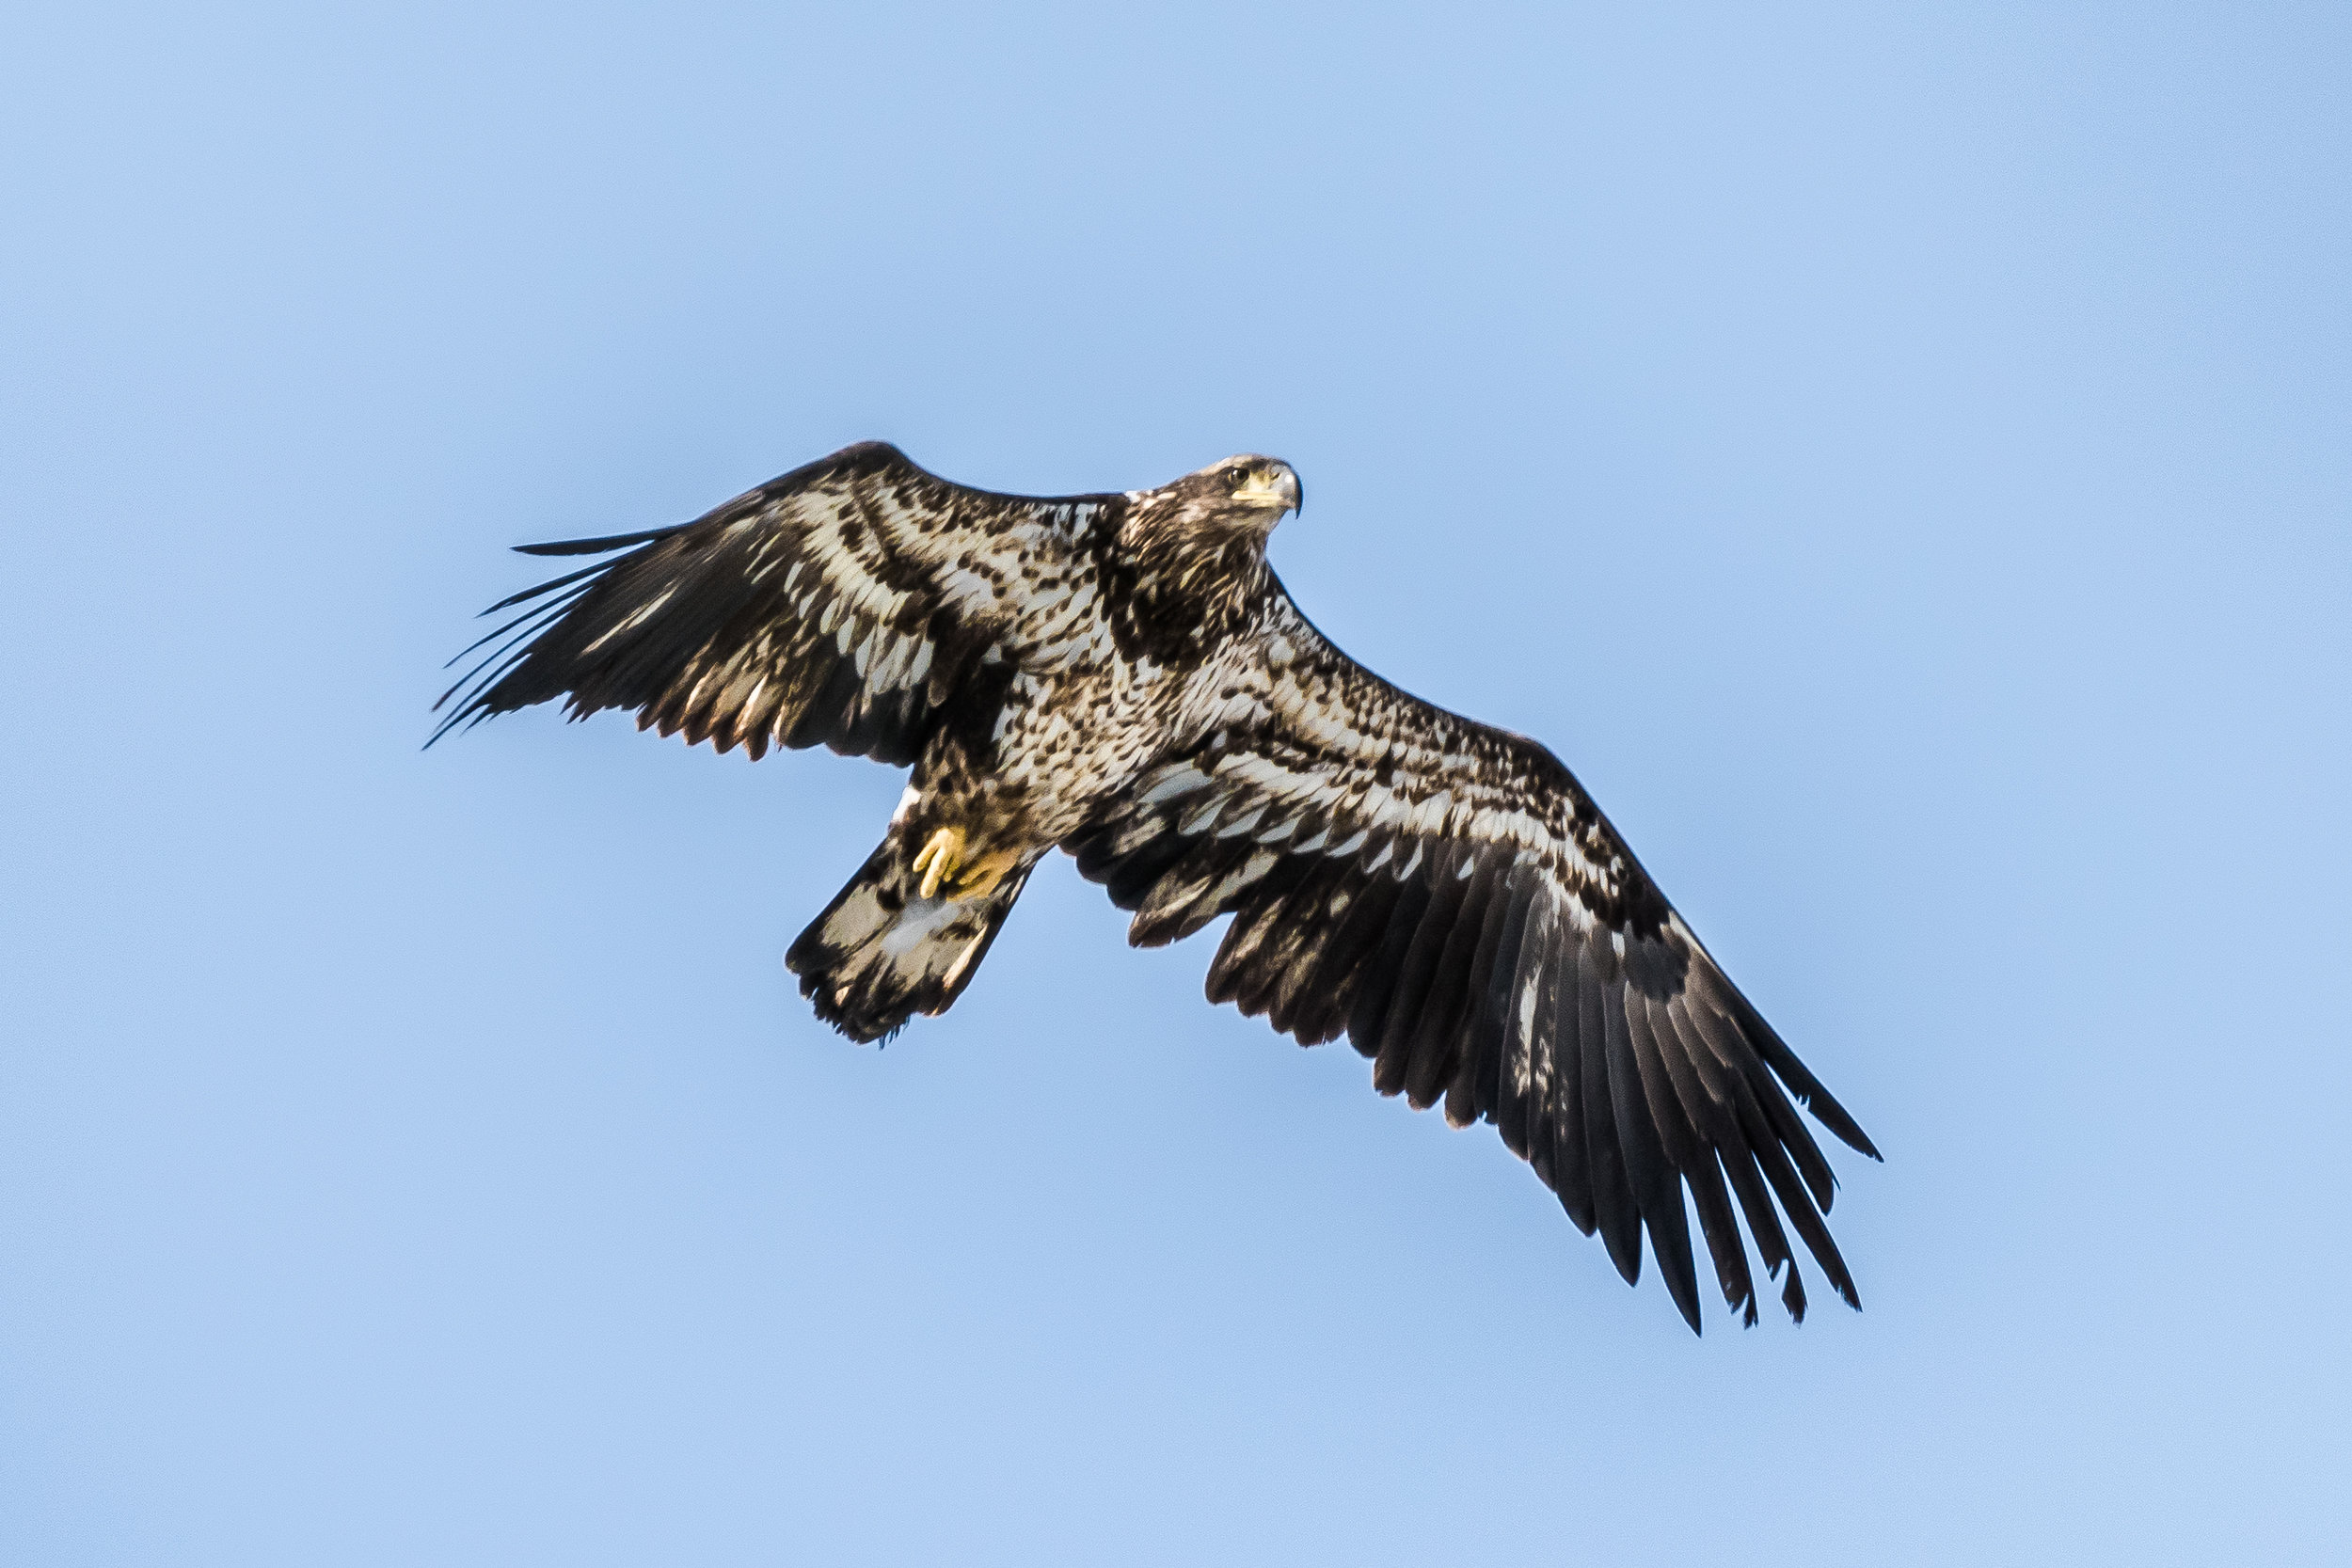 This juvenile bald eagle eagle went zipping right over me a few days ago. I just had enough time to get the camera up.